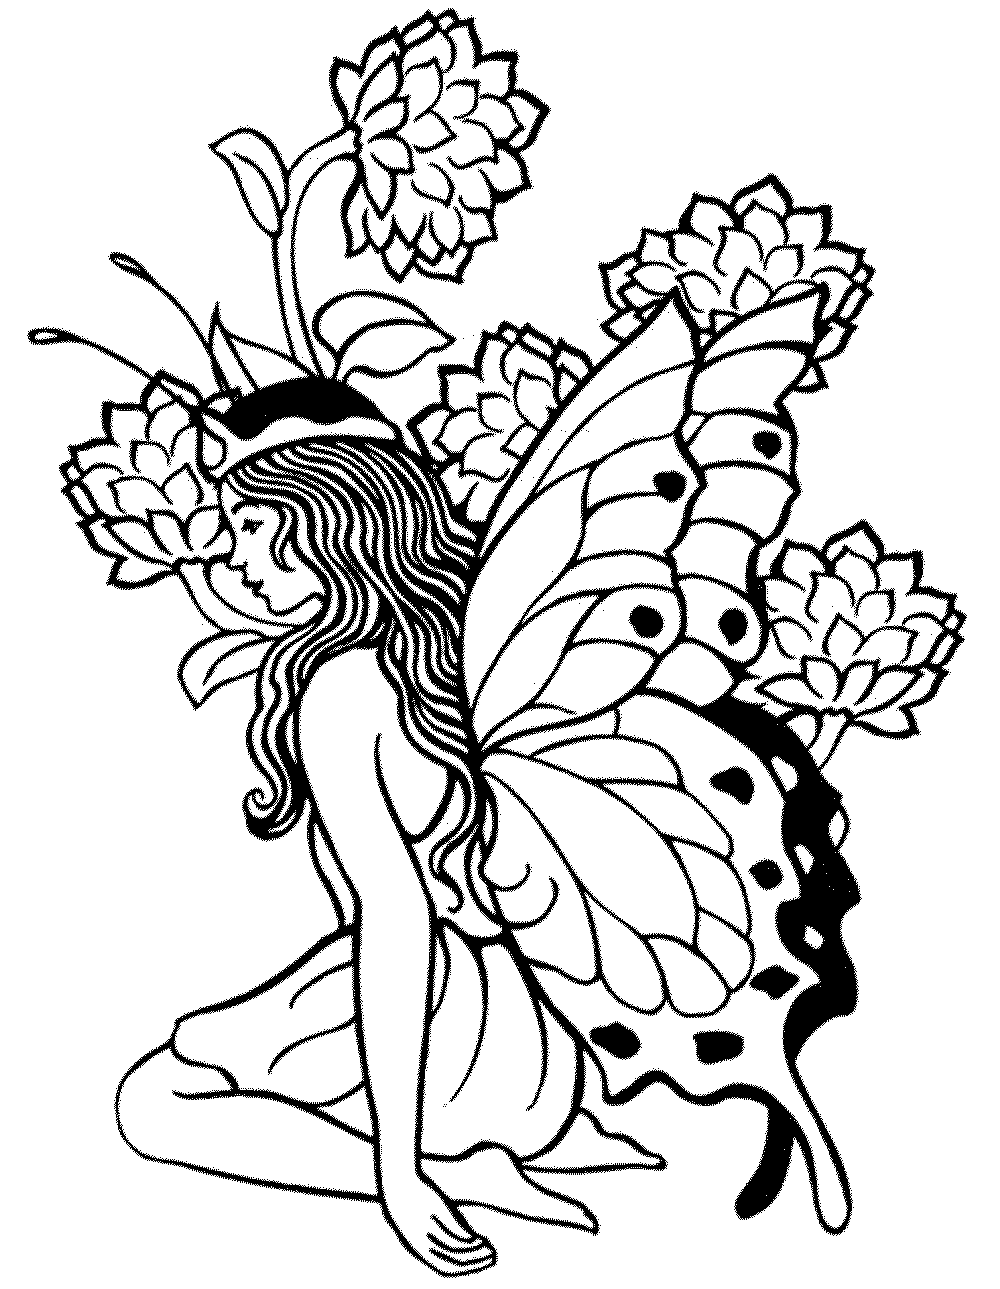 1000x1289 Unparalleled Free Printable Fantasy Coloring Pages For Adults